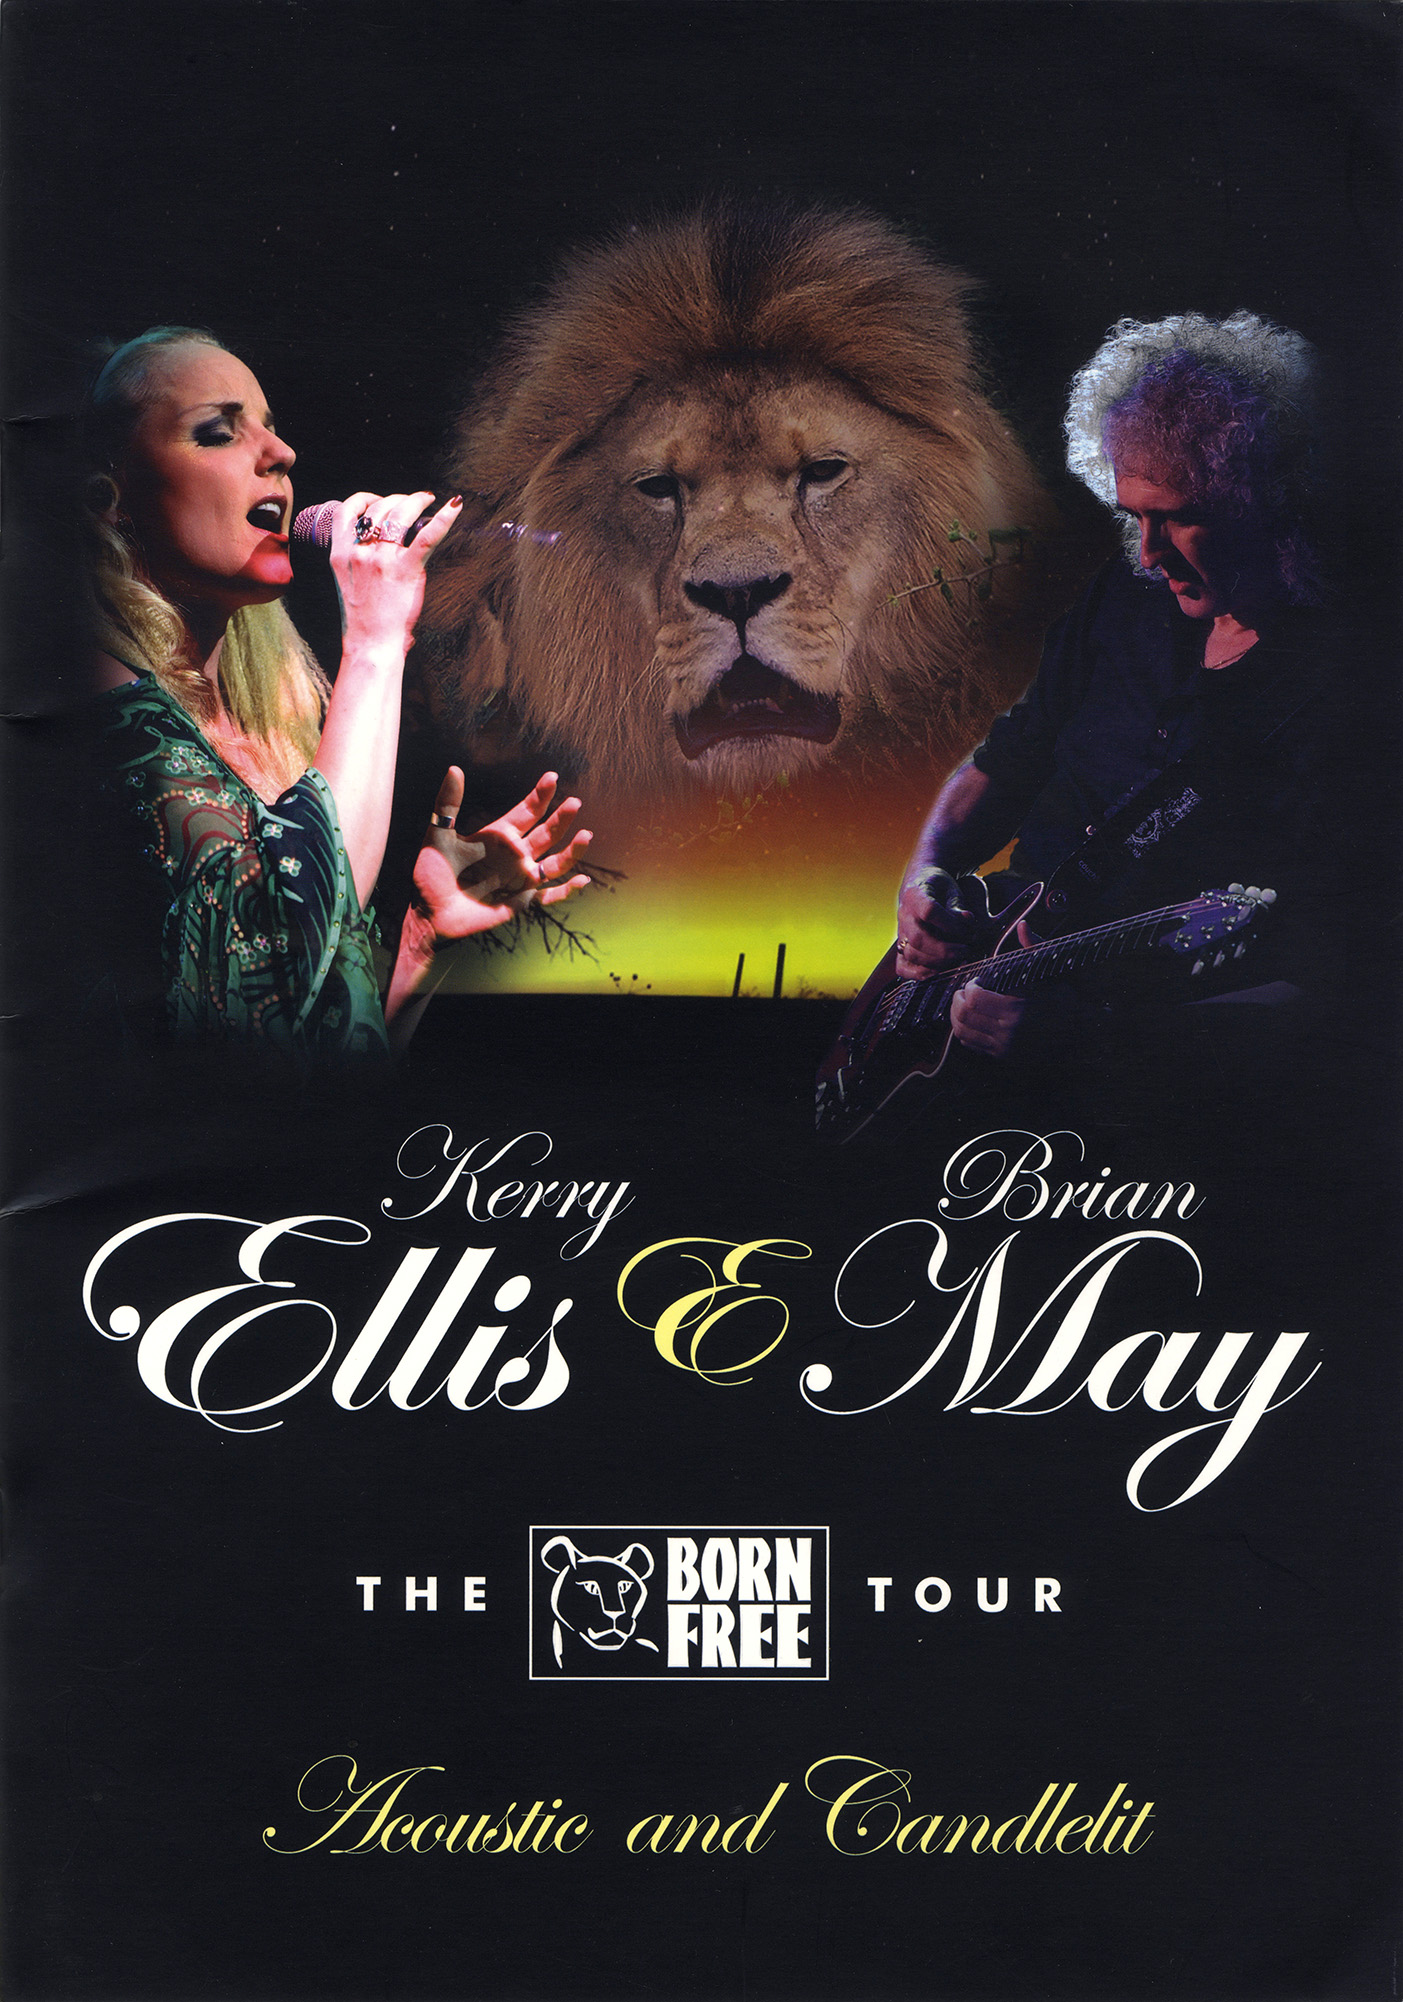 Brian May + Kerry Ellis - Born Free tour 2012